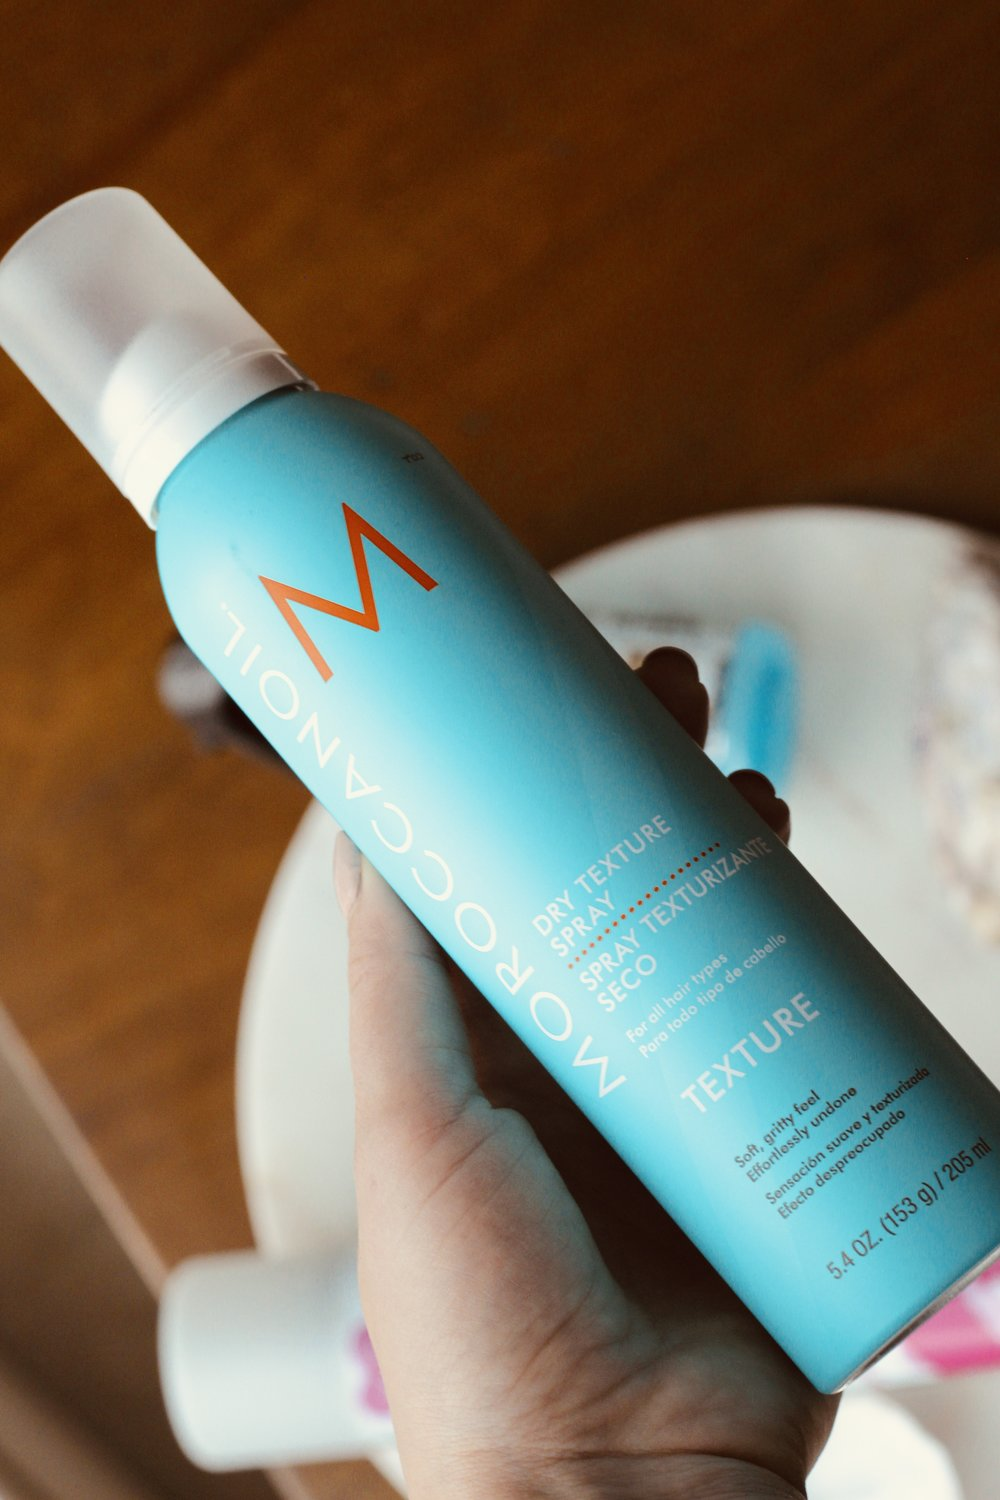 AND THE BEST AND MOST AMAZING PRODUCT PRIZE GOES TO:DRY TEXTURE SPRAY FROM MOROCCAN OIL -